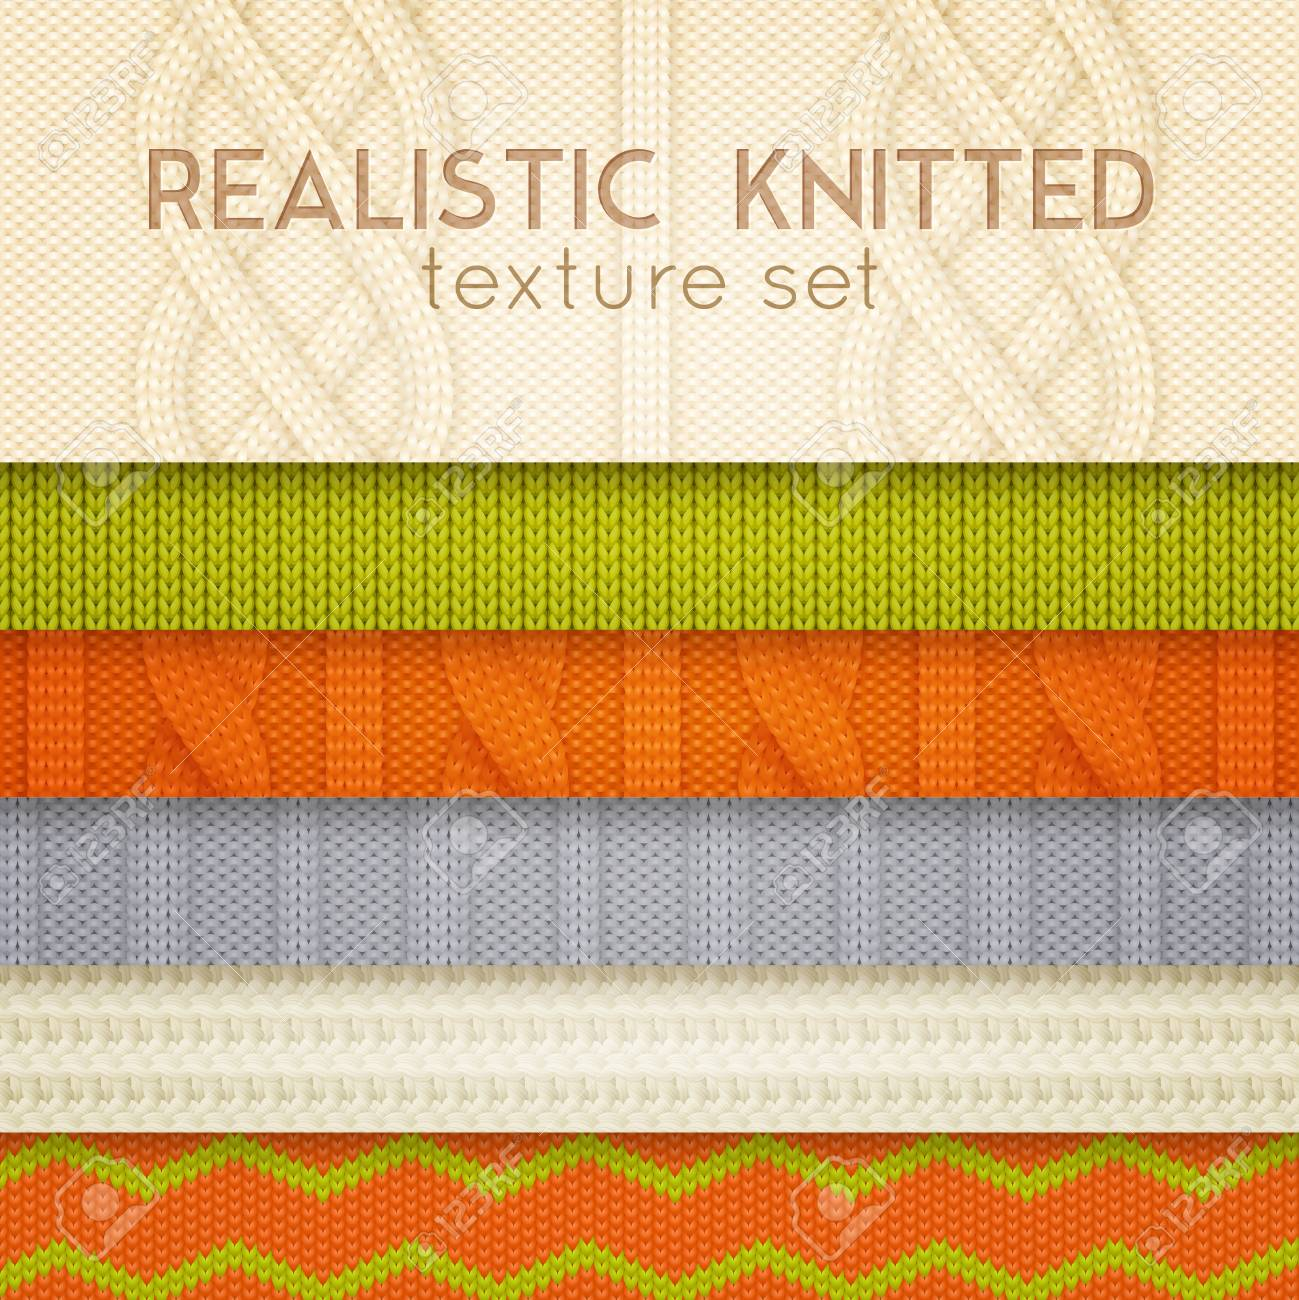 Realistic knitted patterns samples 6 horizontal layers set with scandinavian sweaters cable stitch texture vector illustration - 94794471